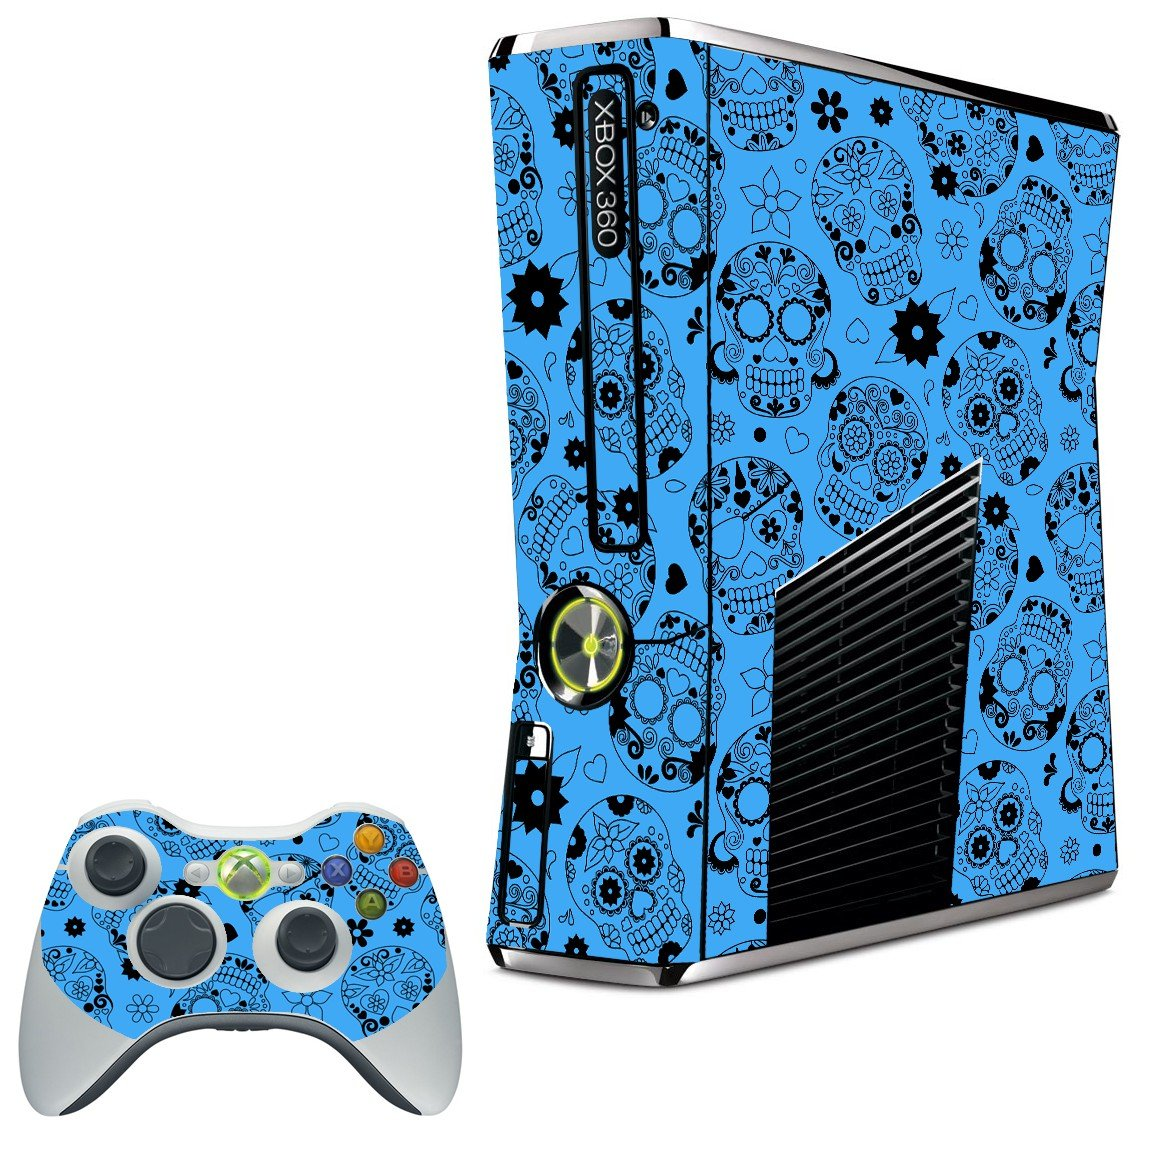 CRAZY BLUE SUGAR SKULLS XBOX 360 SLIM GAME CONSOLE SKIN